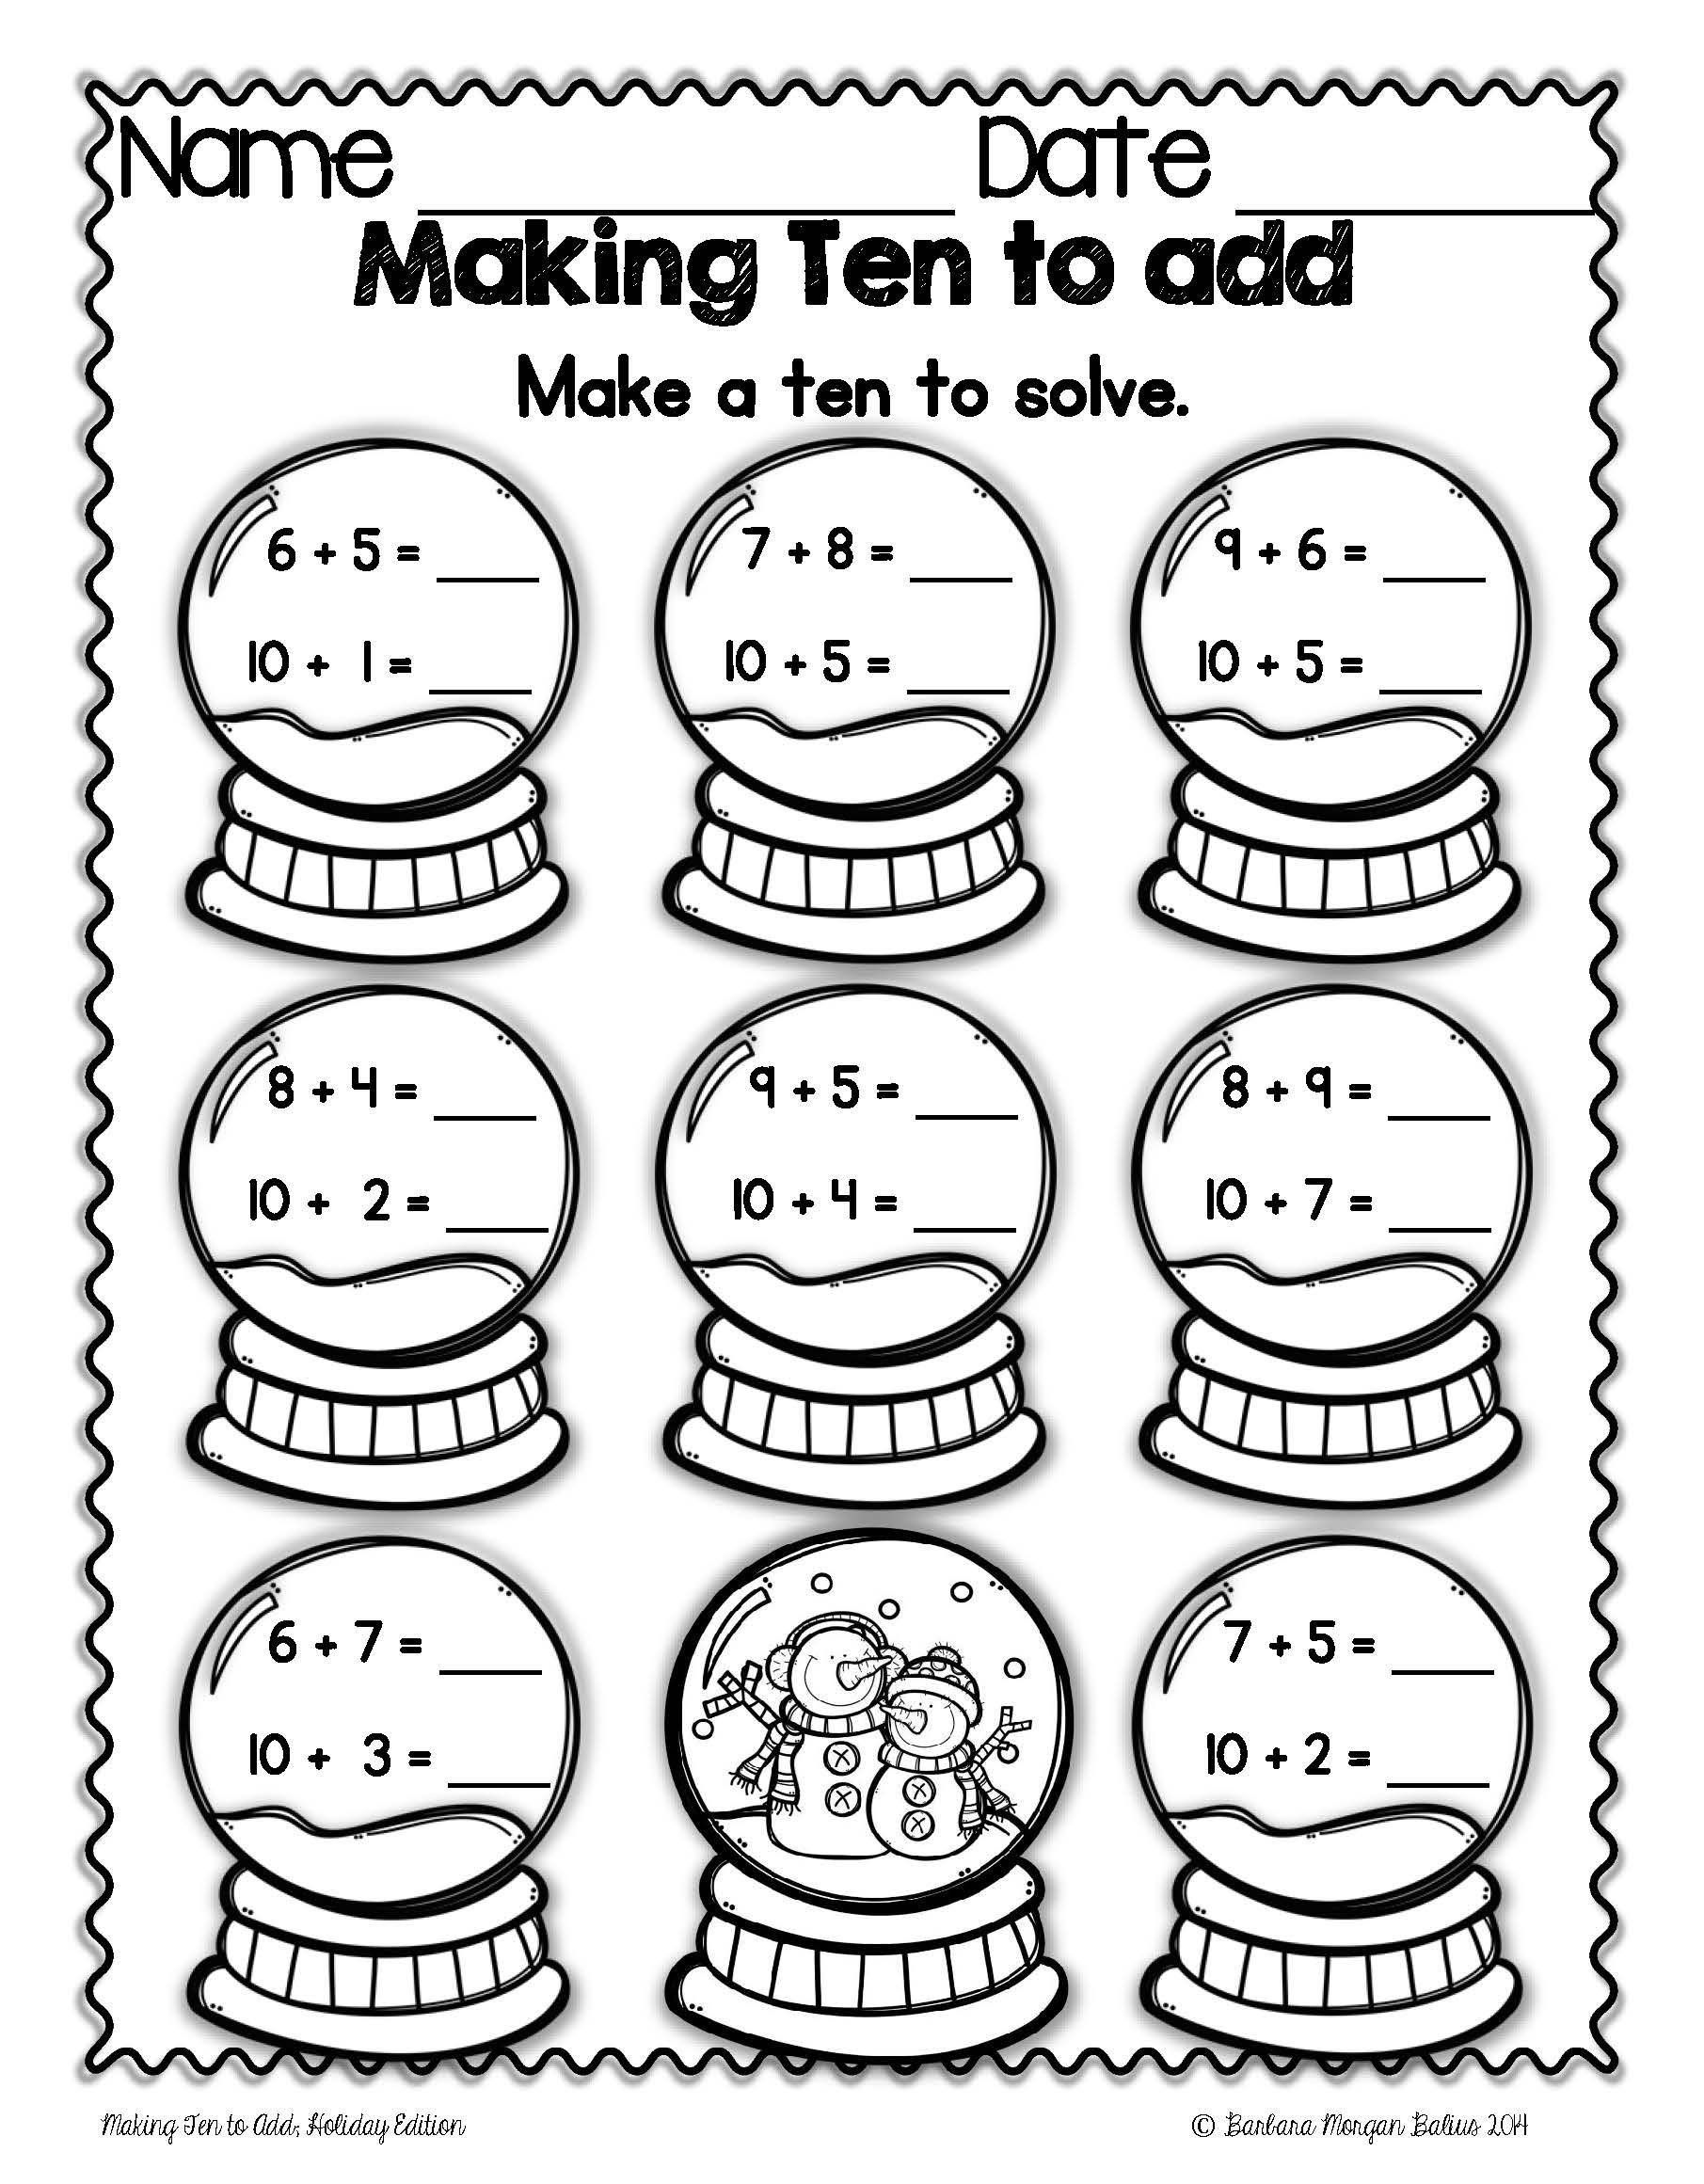 Math Worksheet 2nd Grade Christmas Math Making Ten To Add